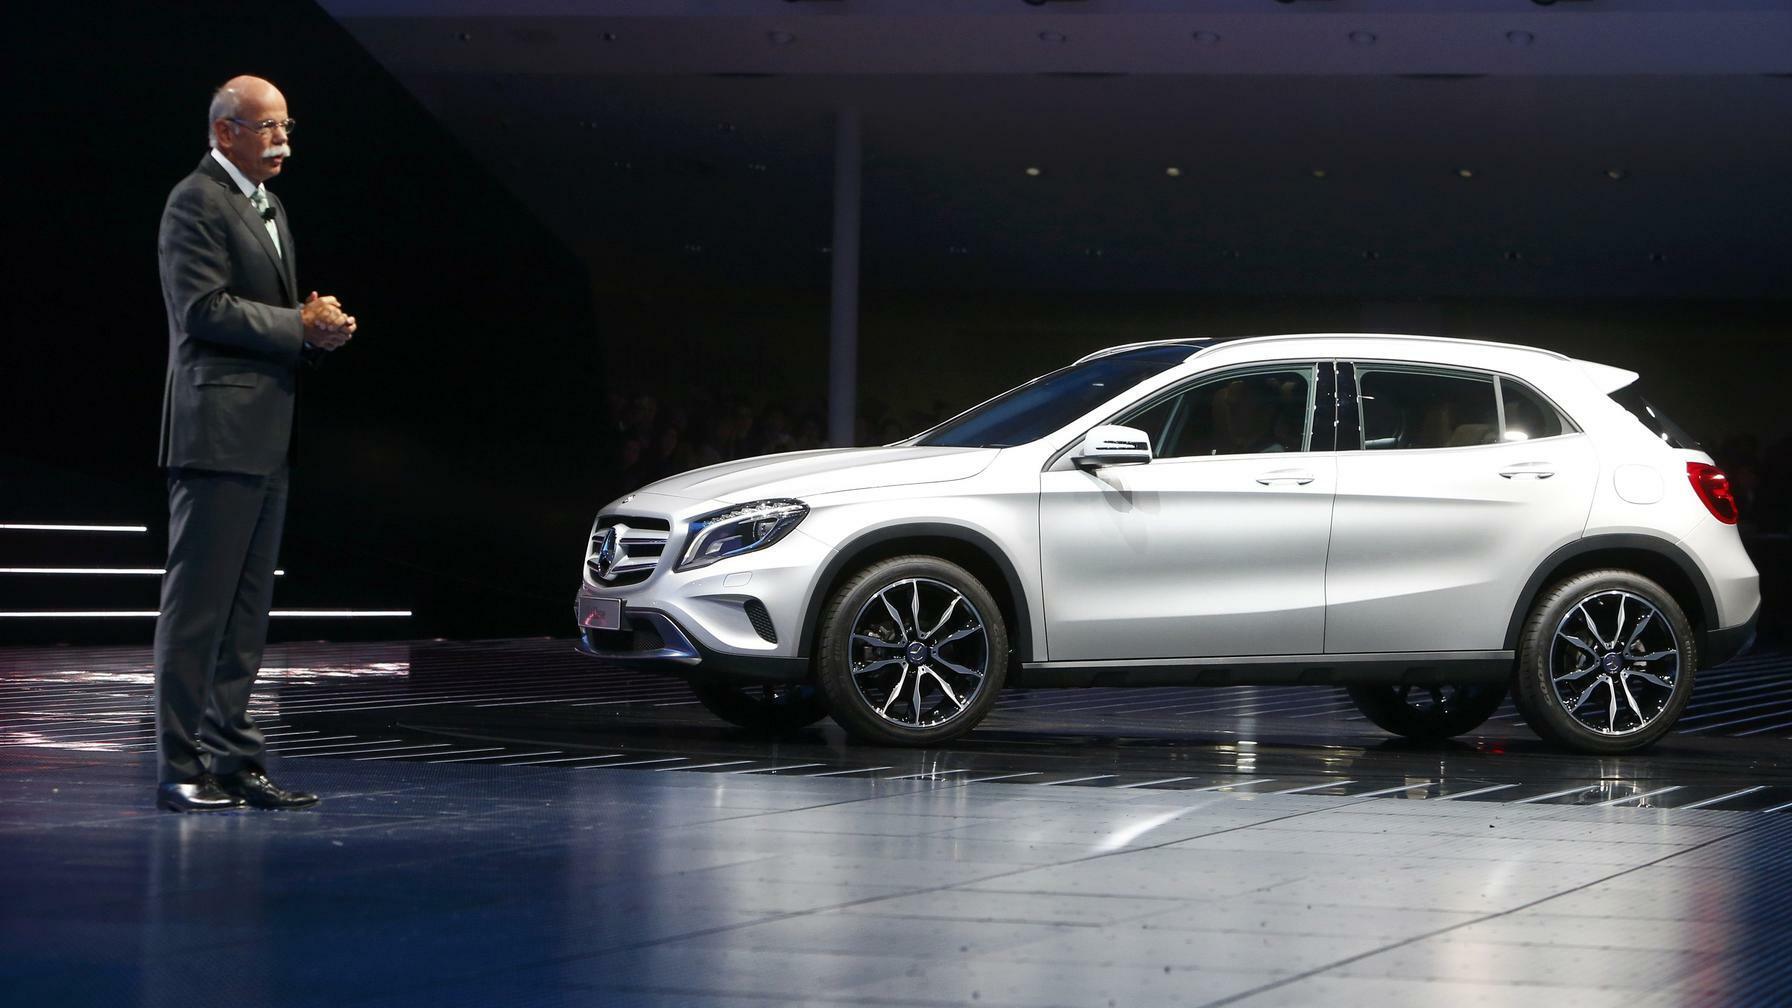 Mercedes GLA Quelle: REUTERS